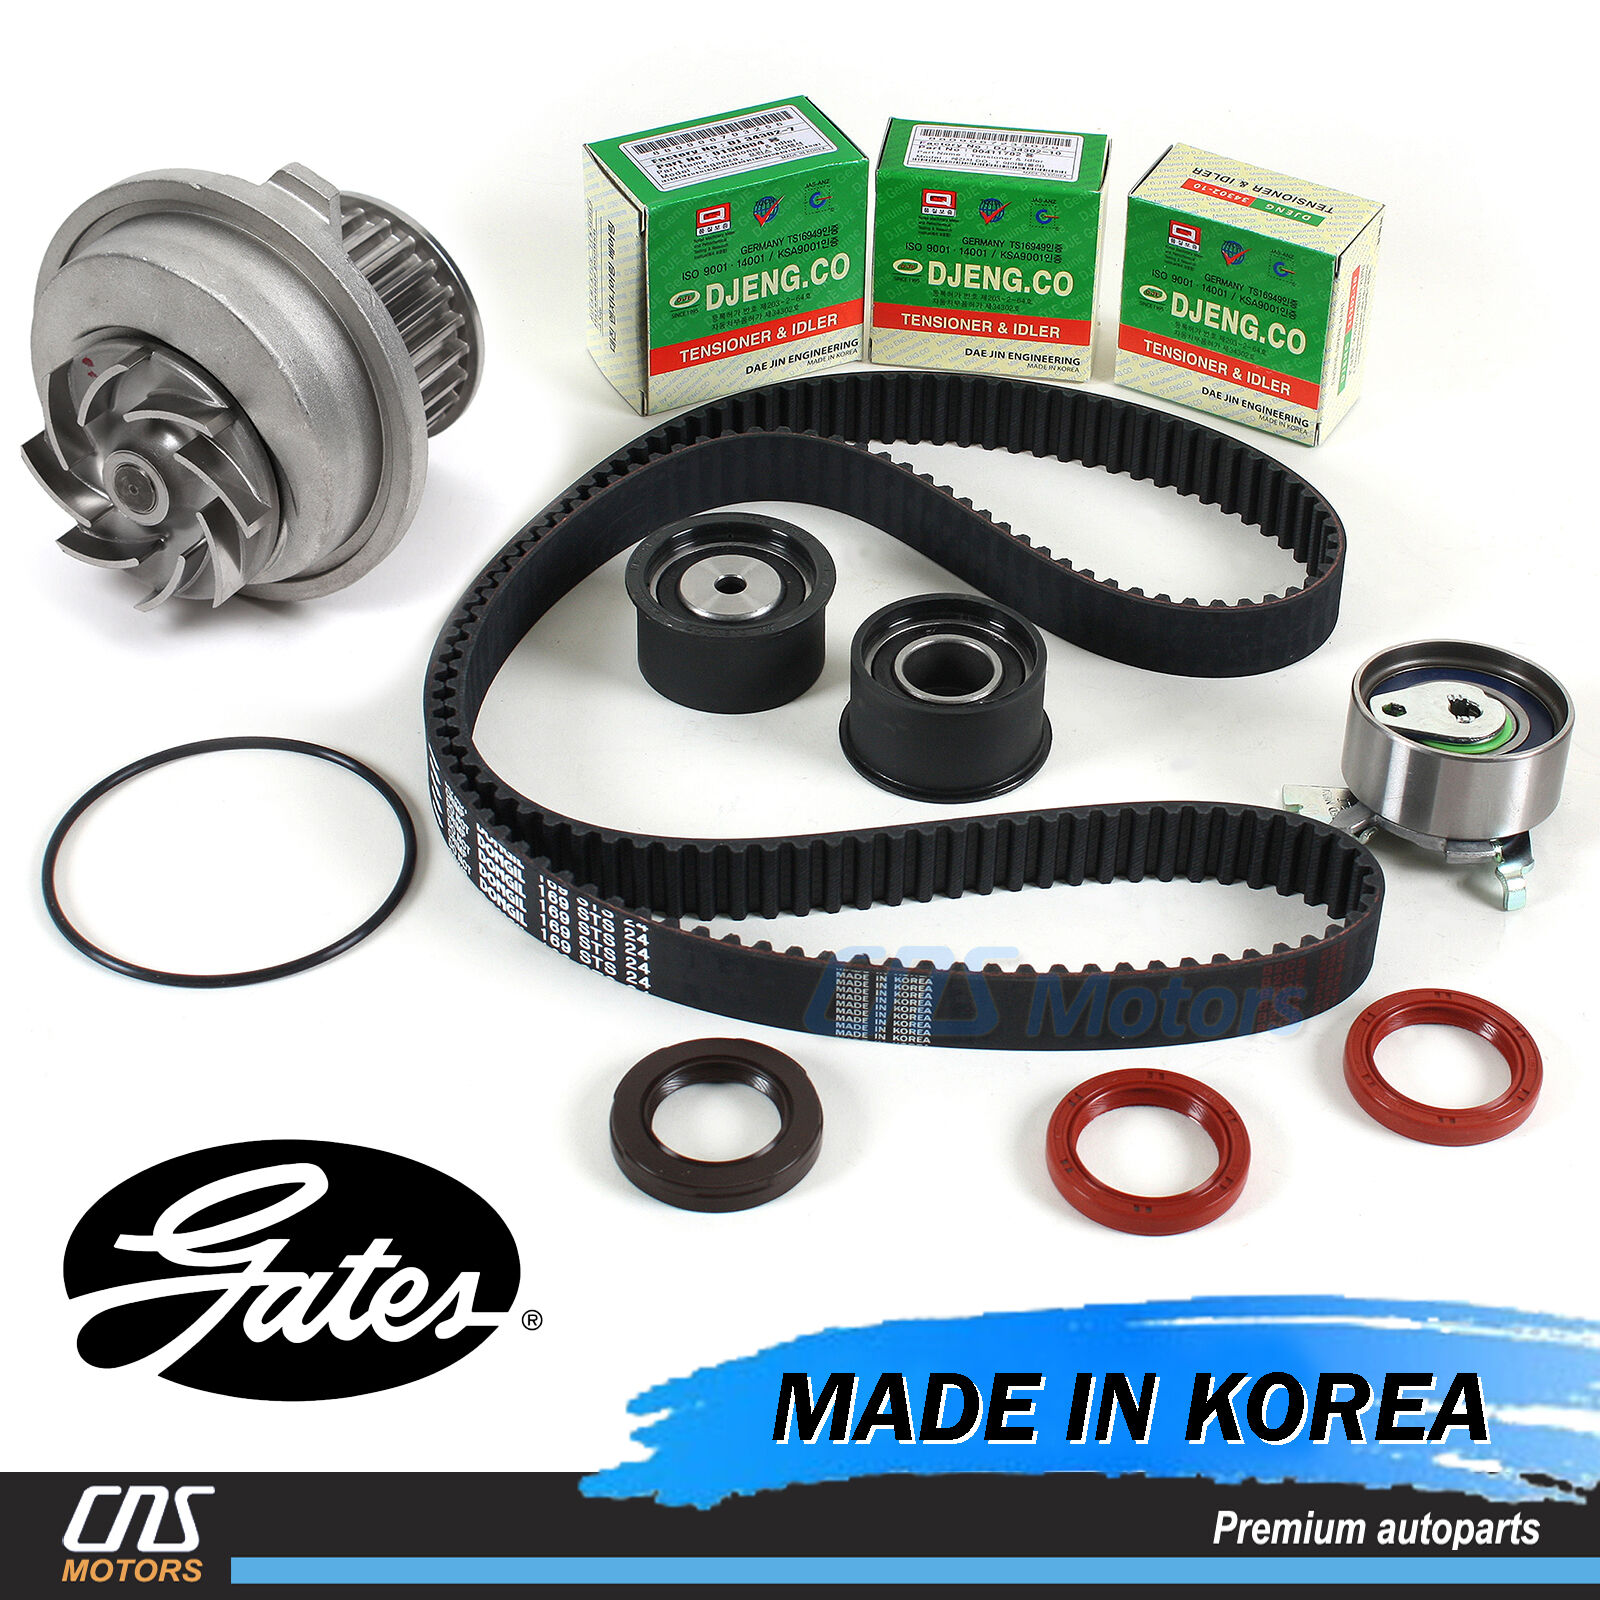 hight resolution of gates htd timing belt kit water pump for 99 08 suzuki forenza reno optra nubira 1 of 5free shipping gates htd timing belt